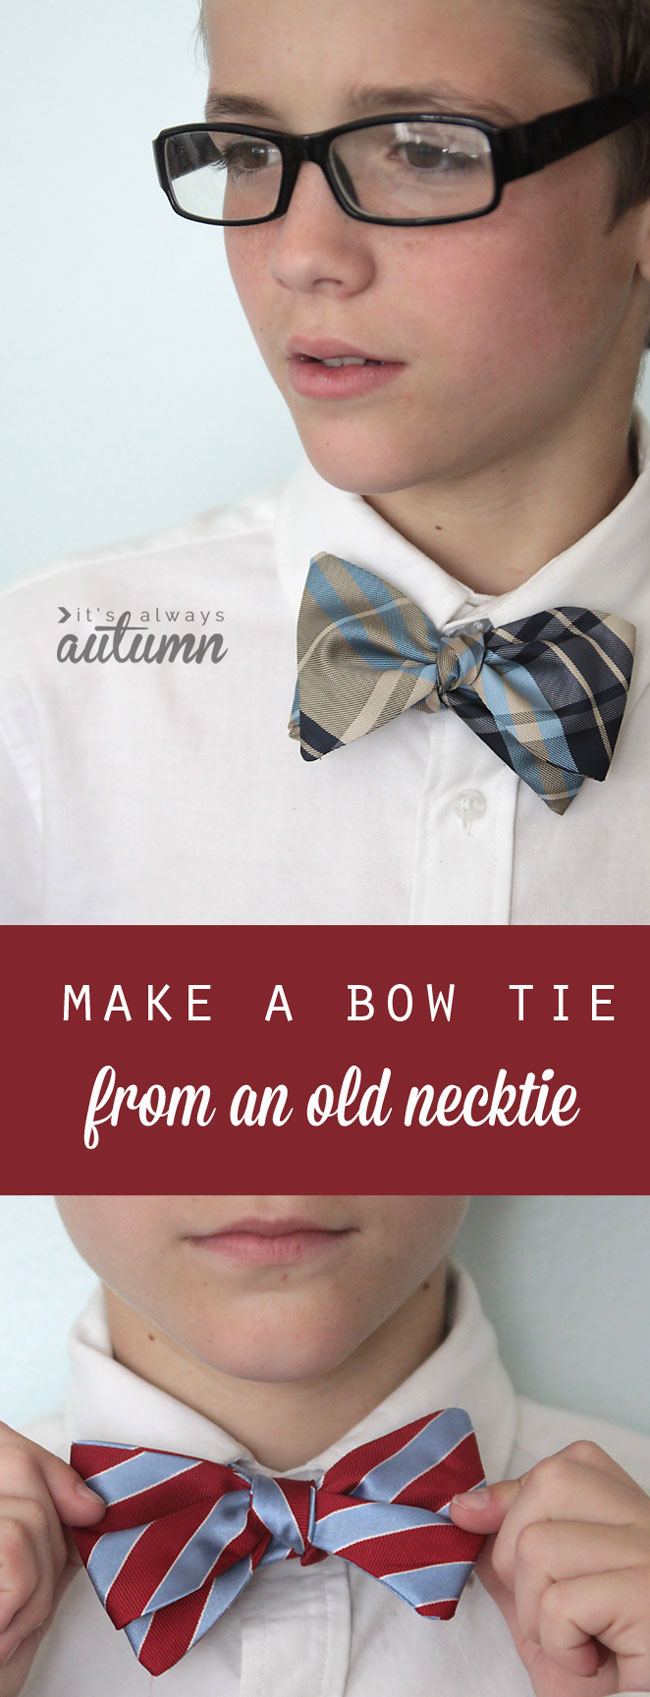 Make a bow tie from an old necktie great teen boy gift its how to make a bow tie from a necktie grew pattern and sewing tutorial jeuxipadfo Images